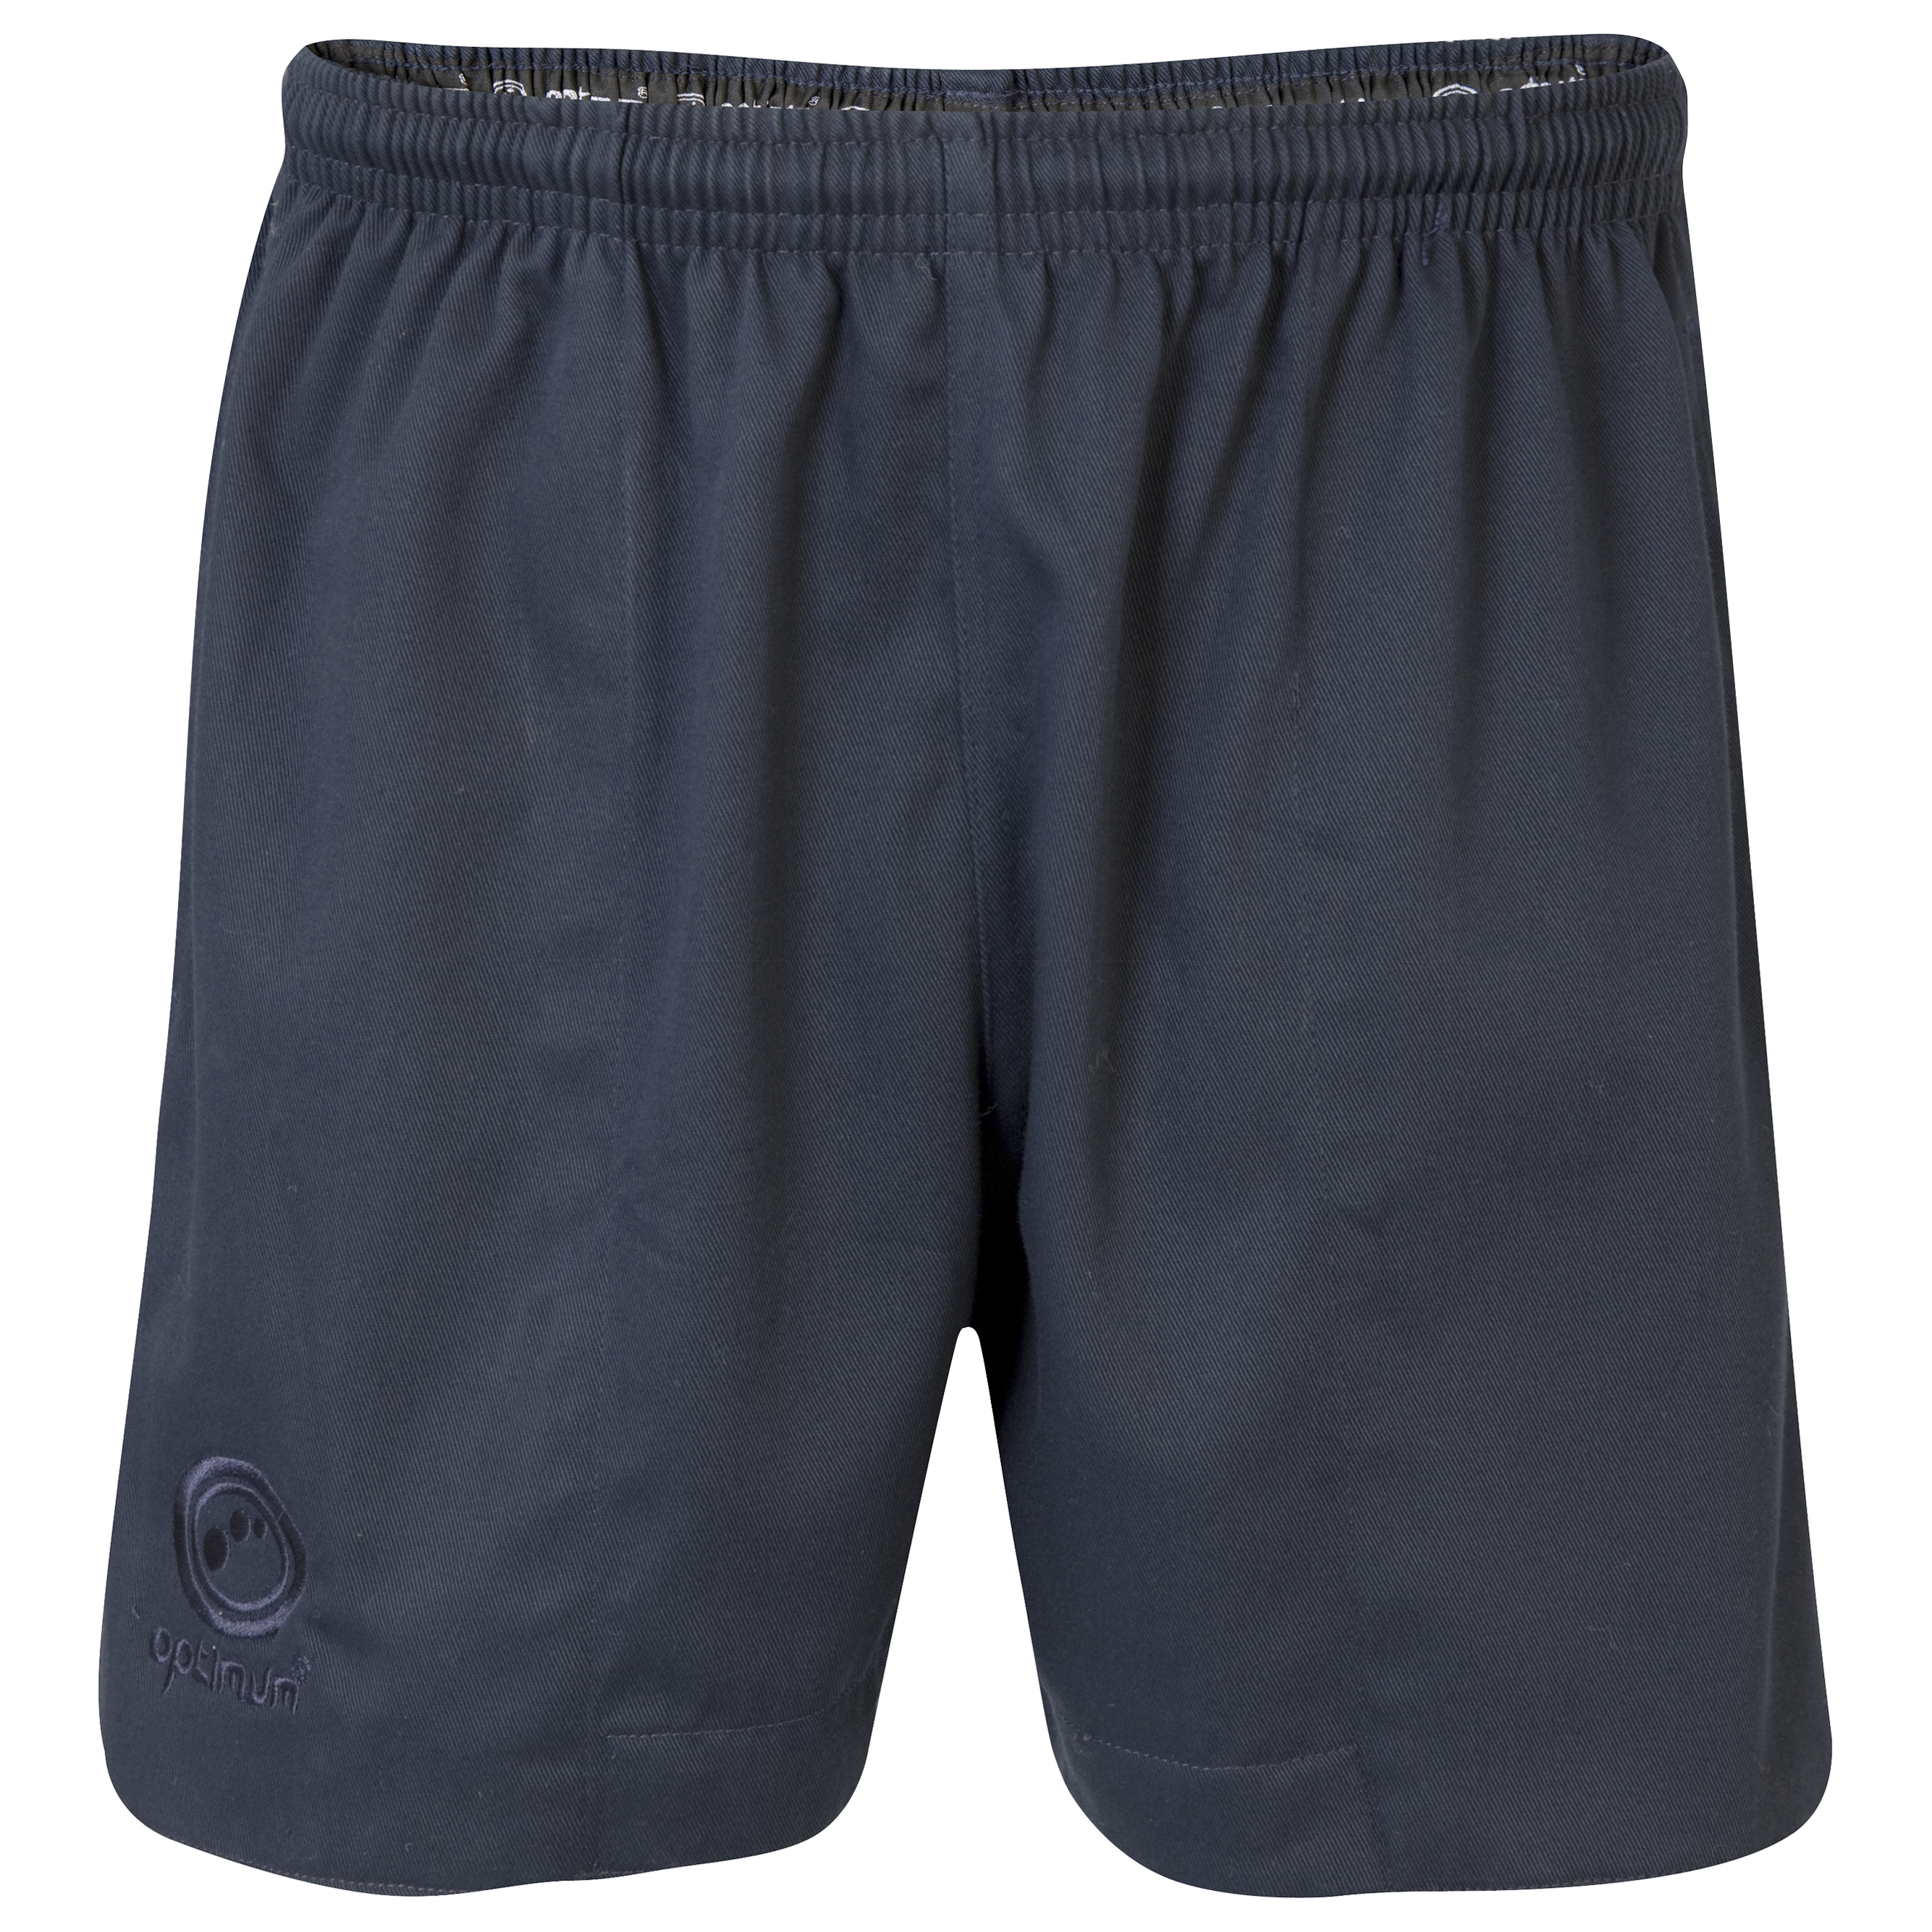 Optimum Rugby Shorts - Navy/Orange - Kids